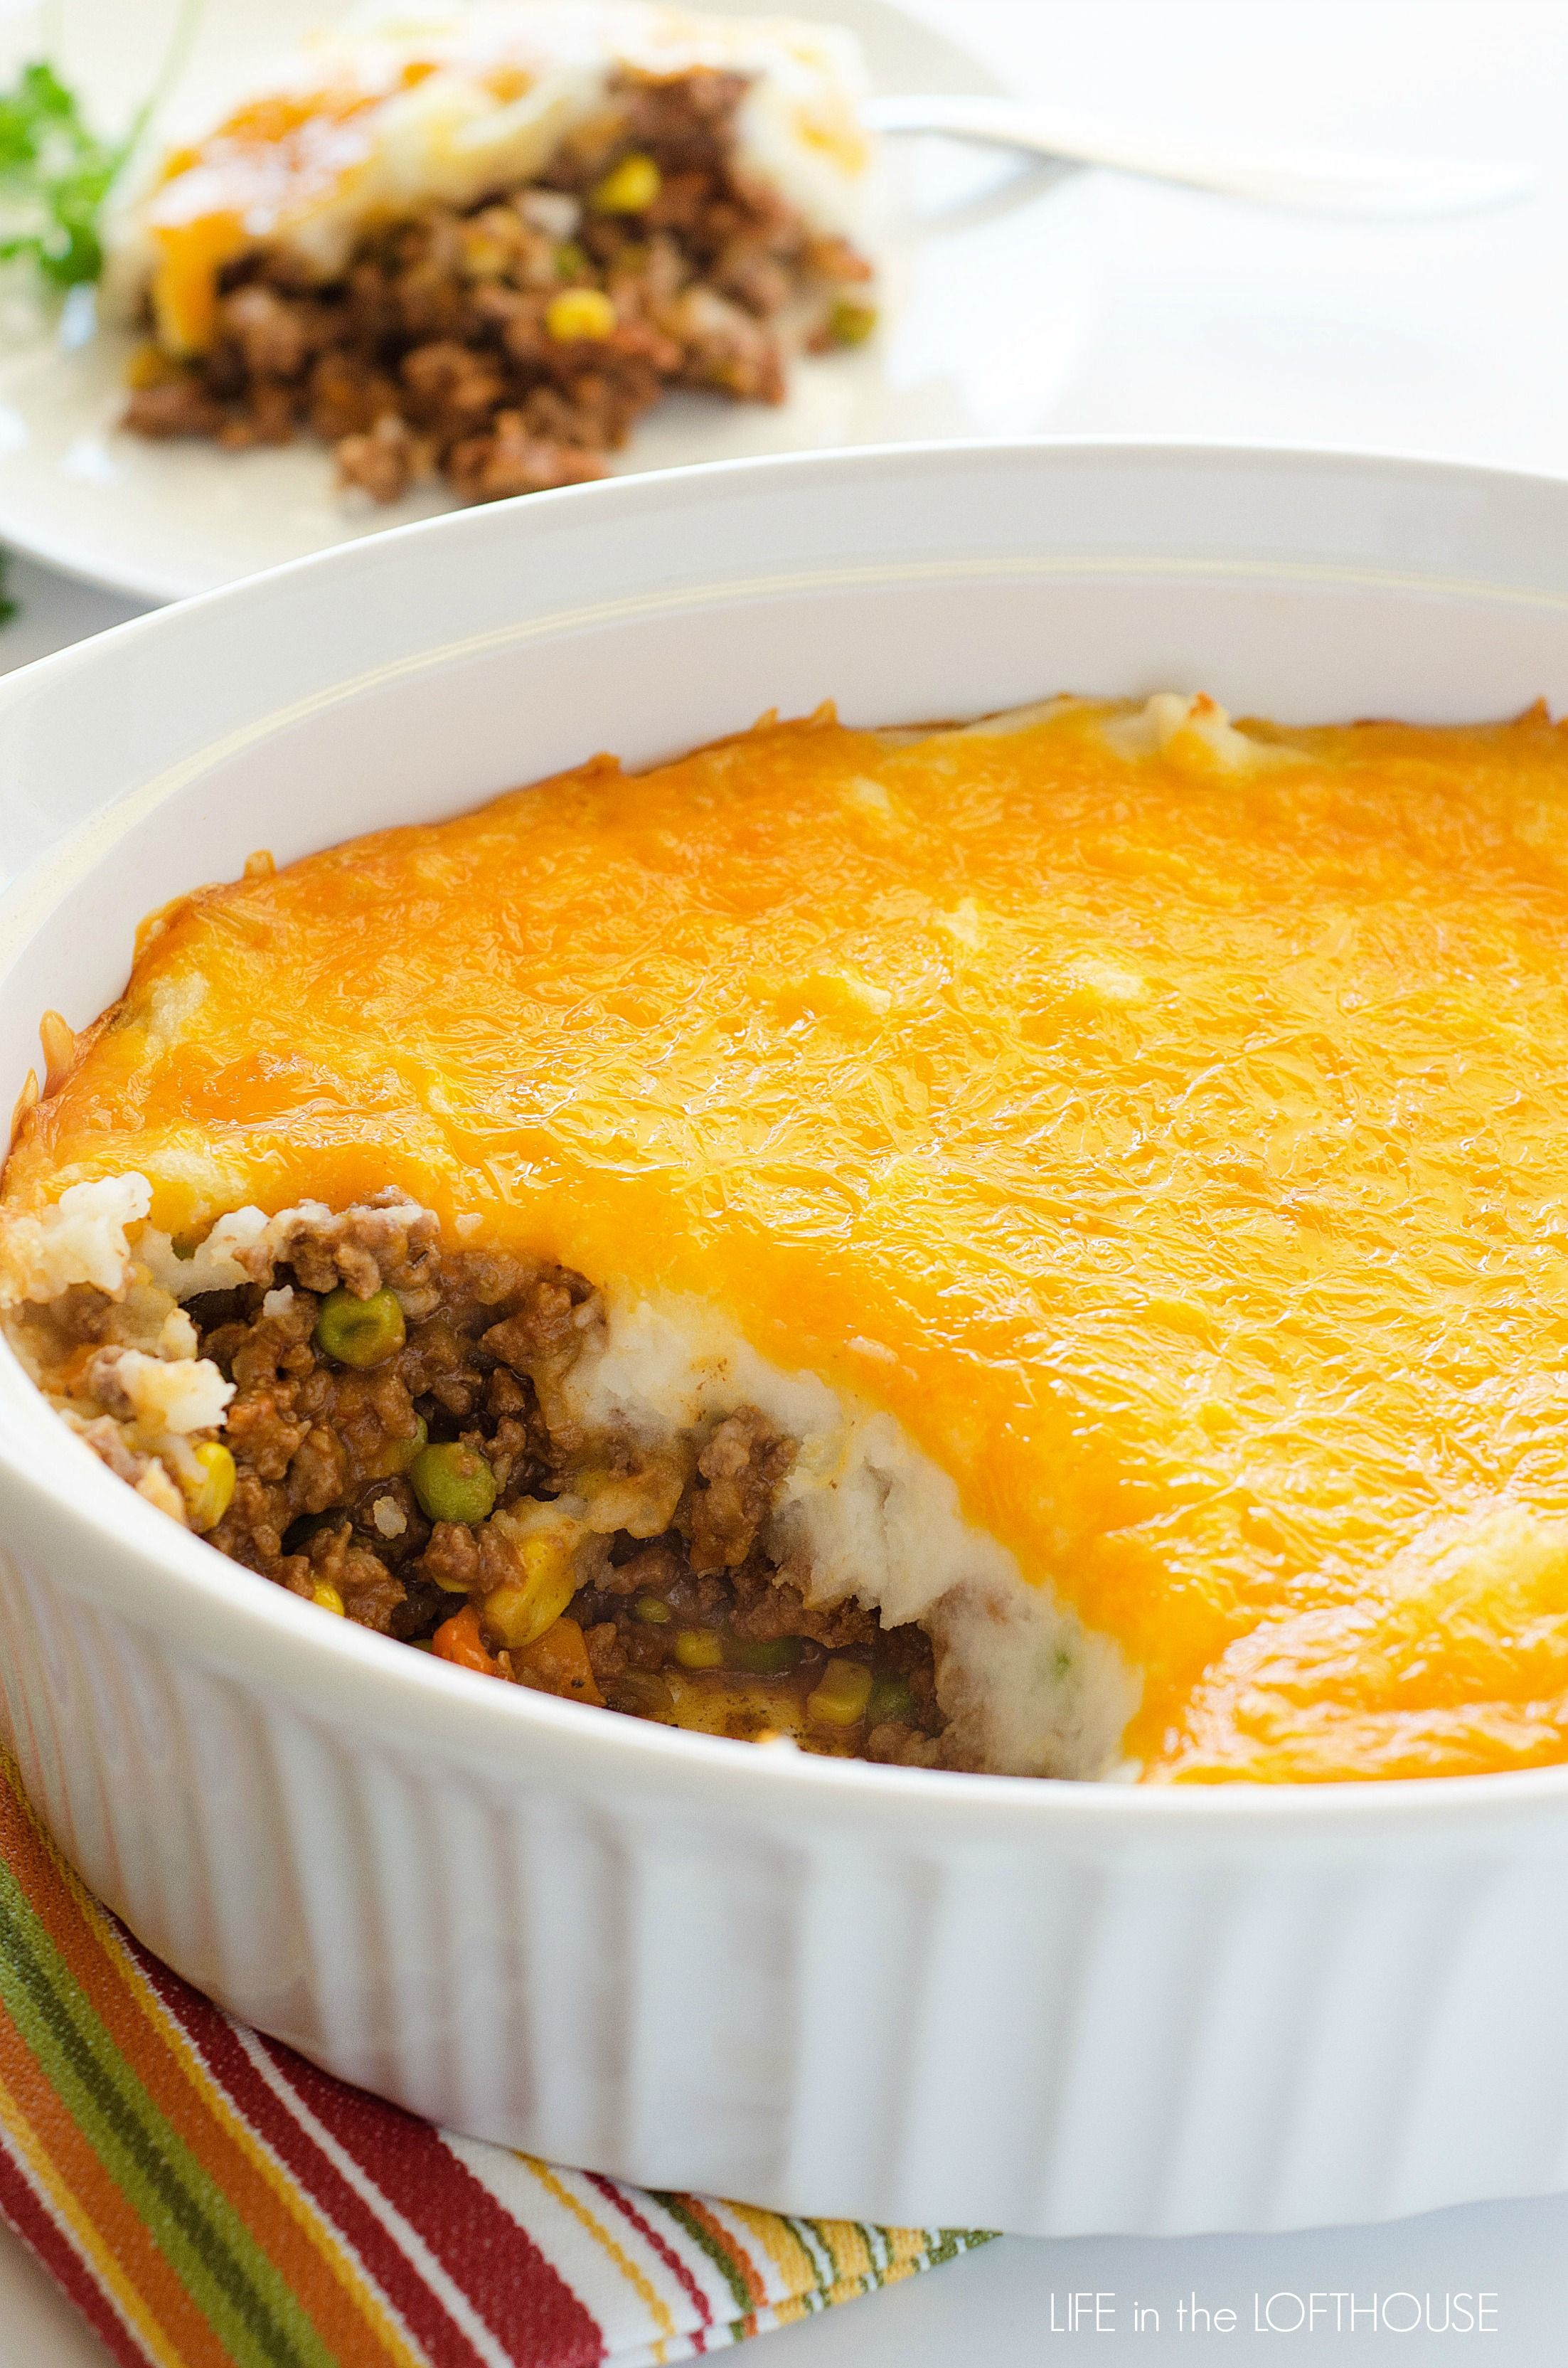 Shepherd S Pie Made With Ground Beef From Life In The Lofthouse Yummy Comfort Food Casserole St Patricks Day Food Recipes Cottage Pie Ground Beef Rec